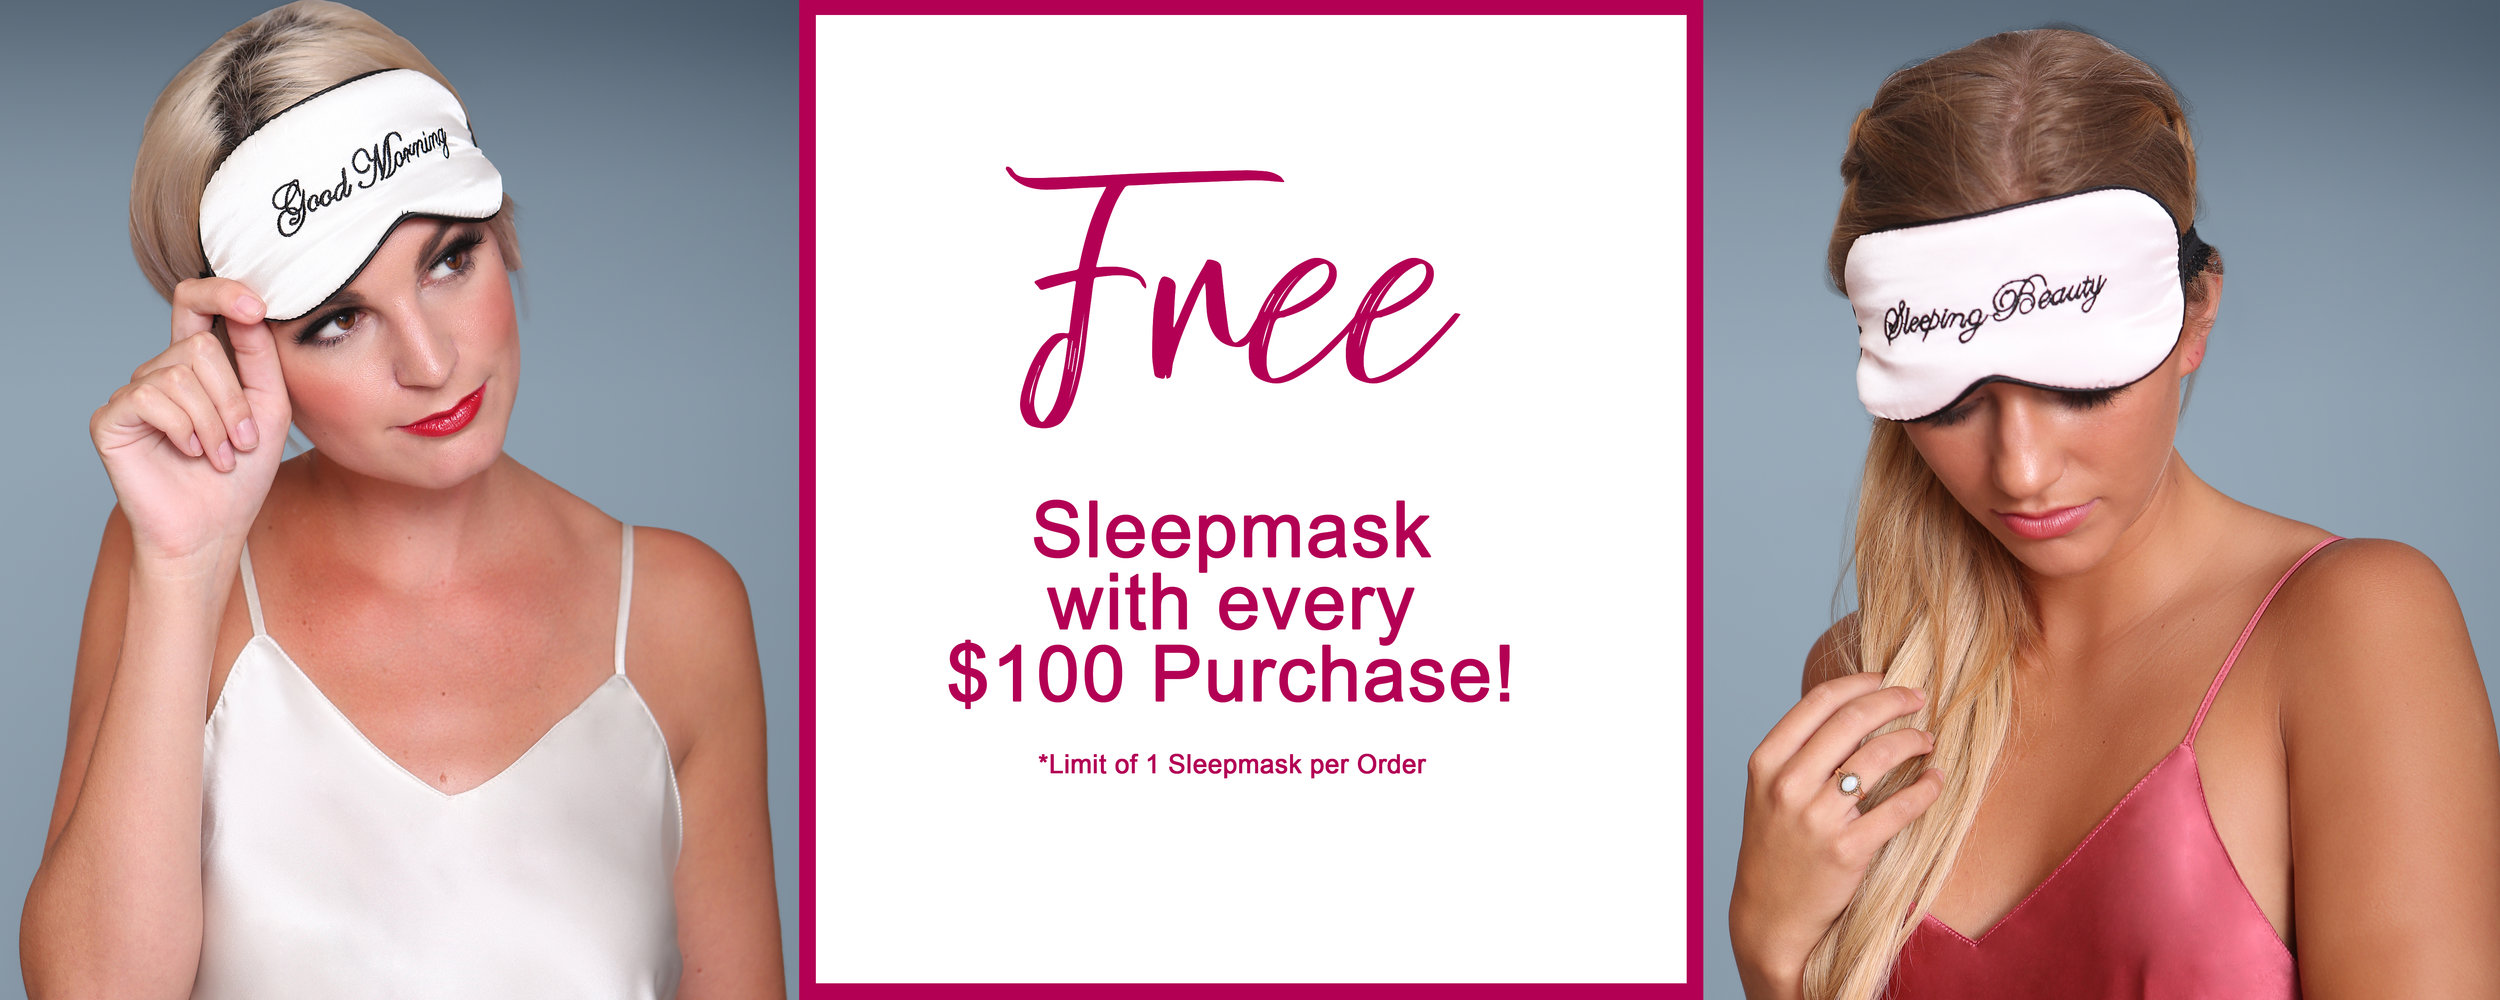 Free Sleepmask Long 2.jpg